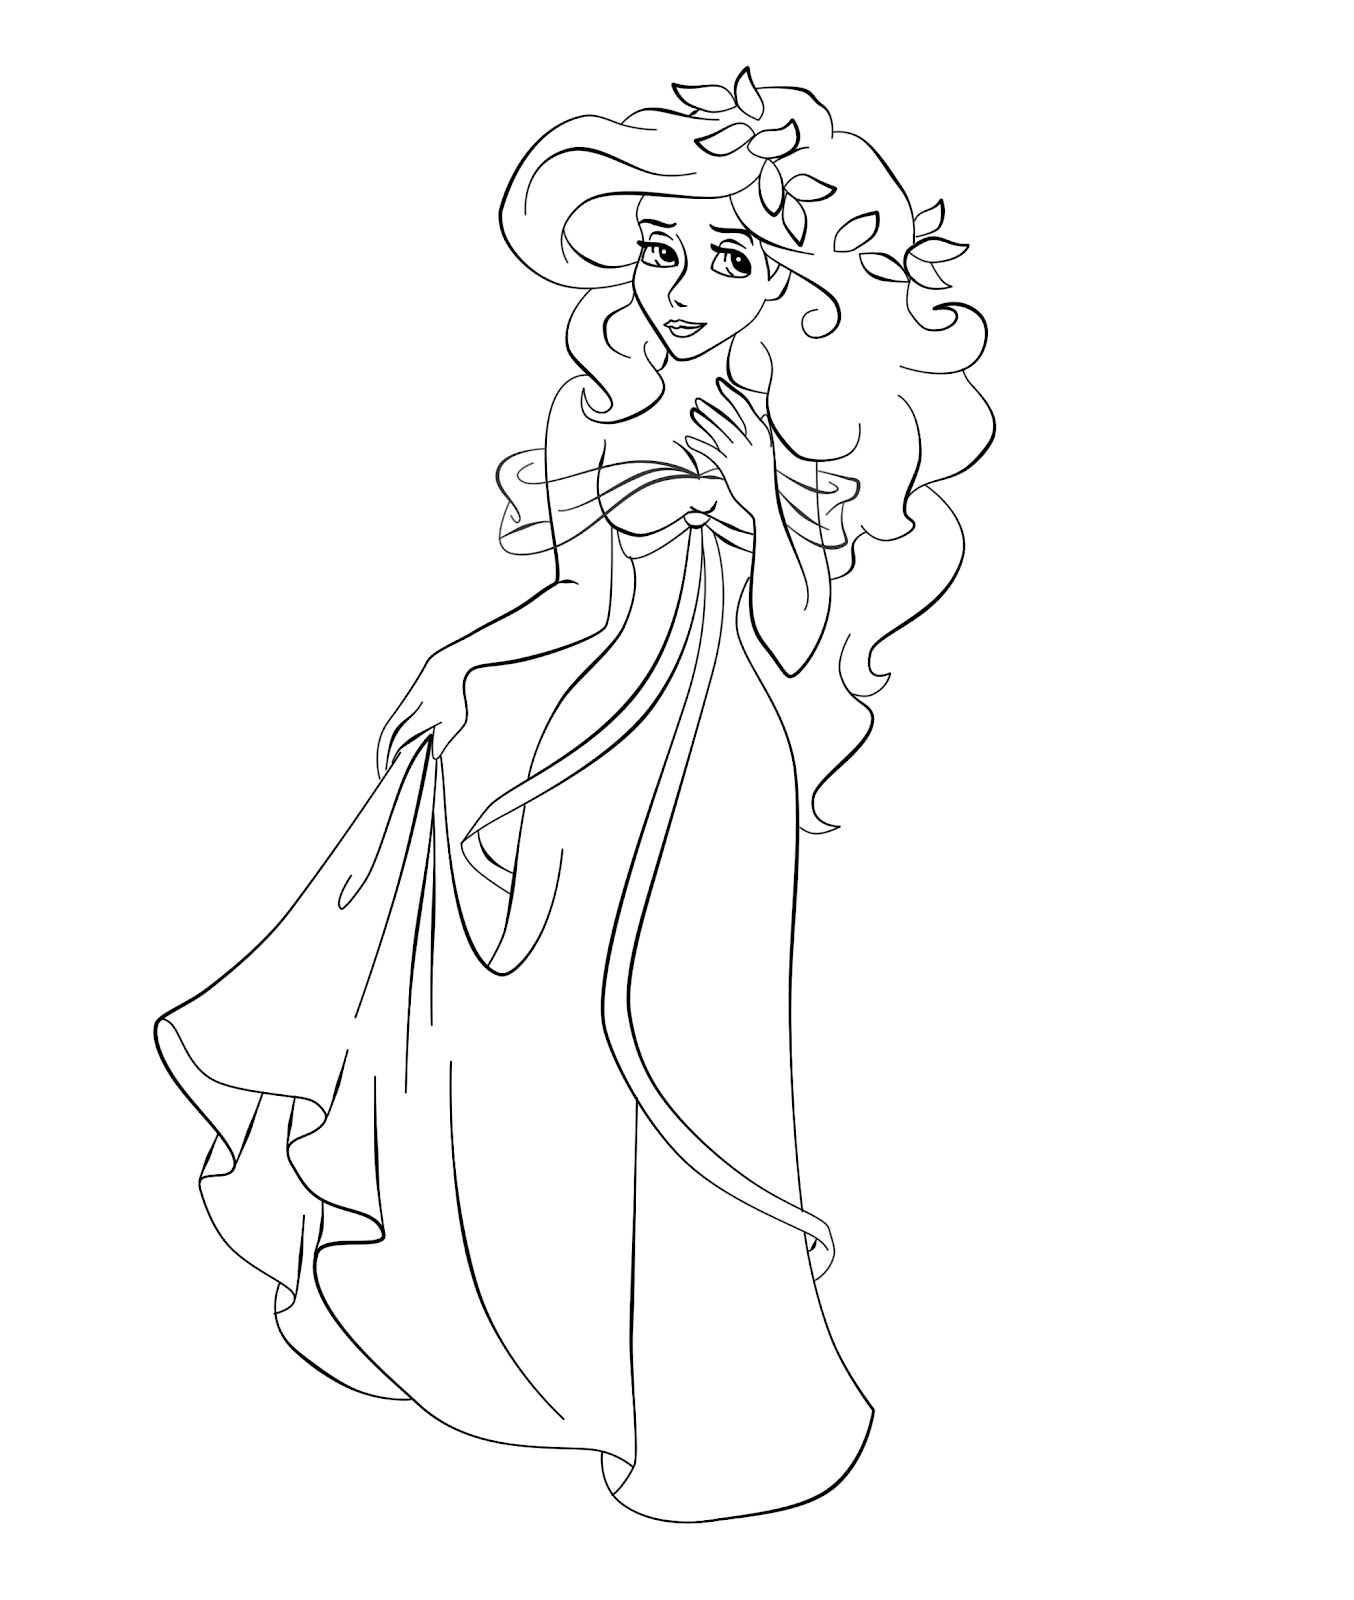 disney princess characters coloring pages - photo#15